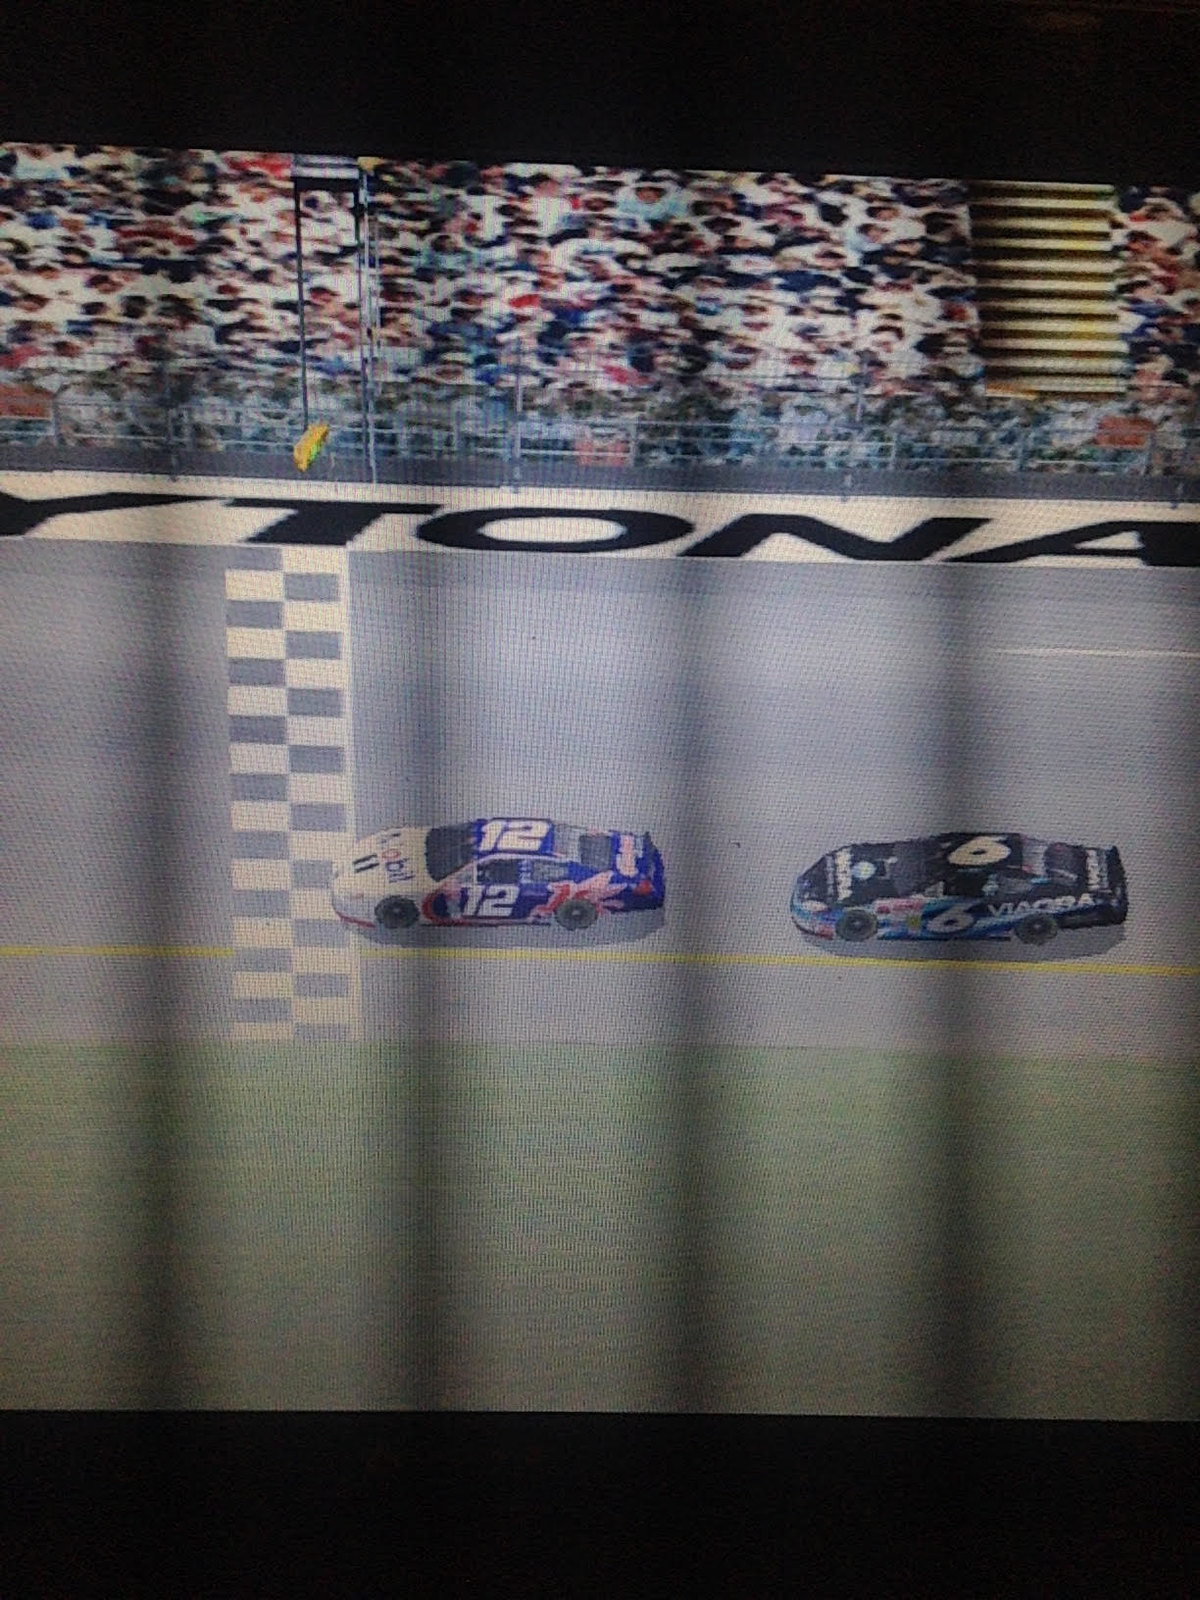 What If: Adam Petty Survived (NR2003) - Page 5 - Operation Sports Forums